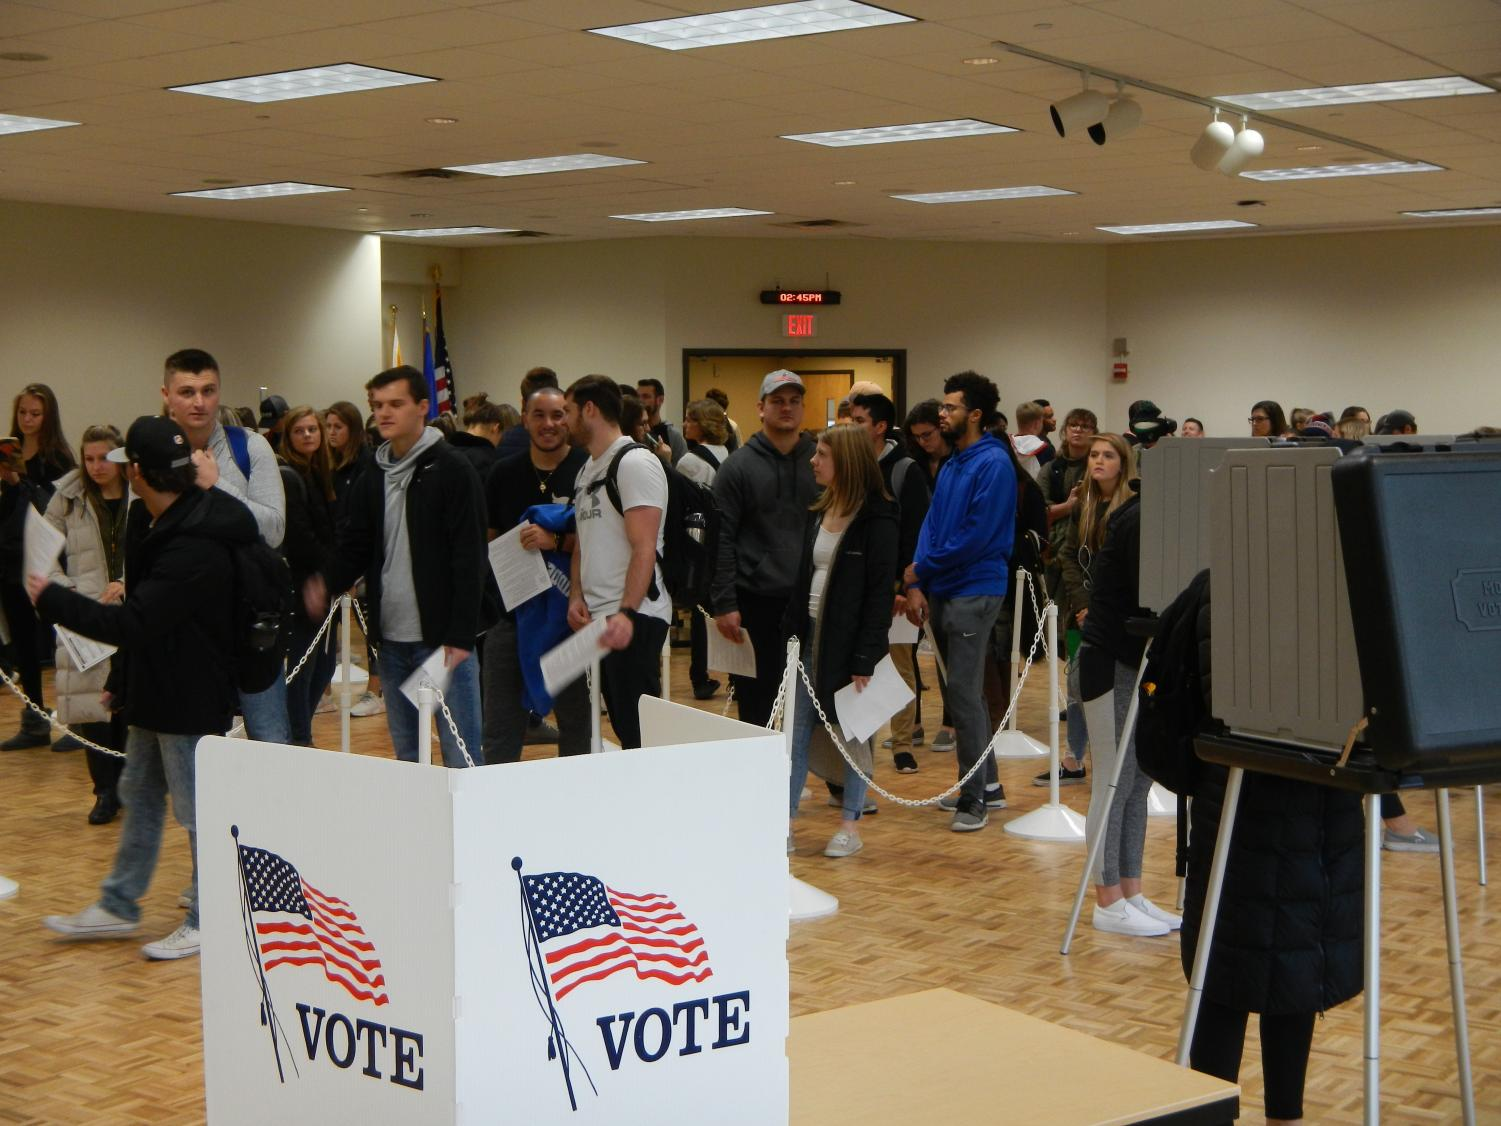 UWO students wait in line at Reeve Memorial Union to cast their vote in the 2018 midterm election.